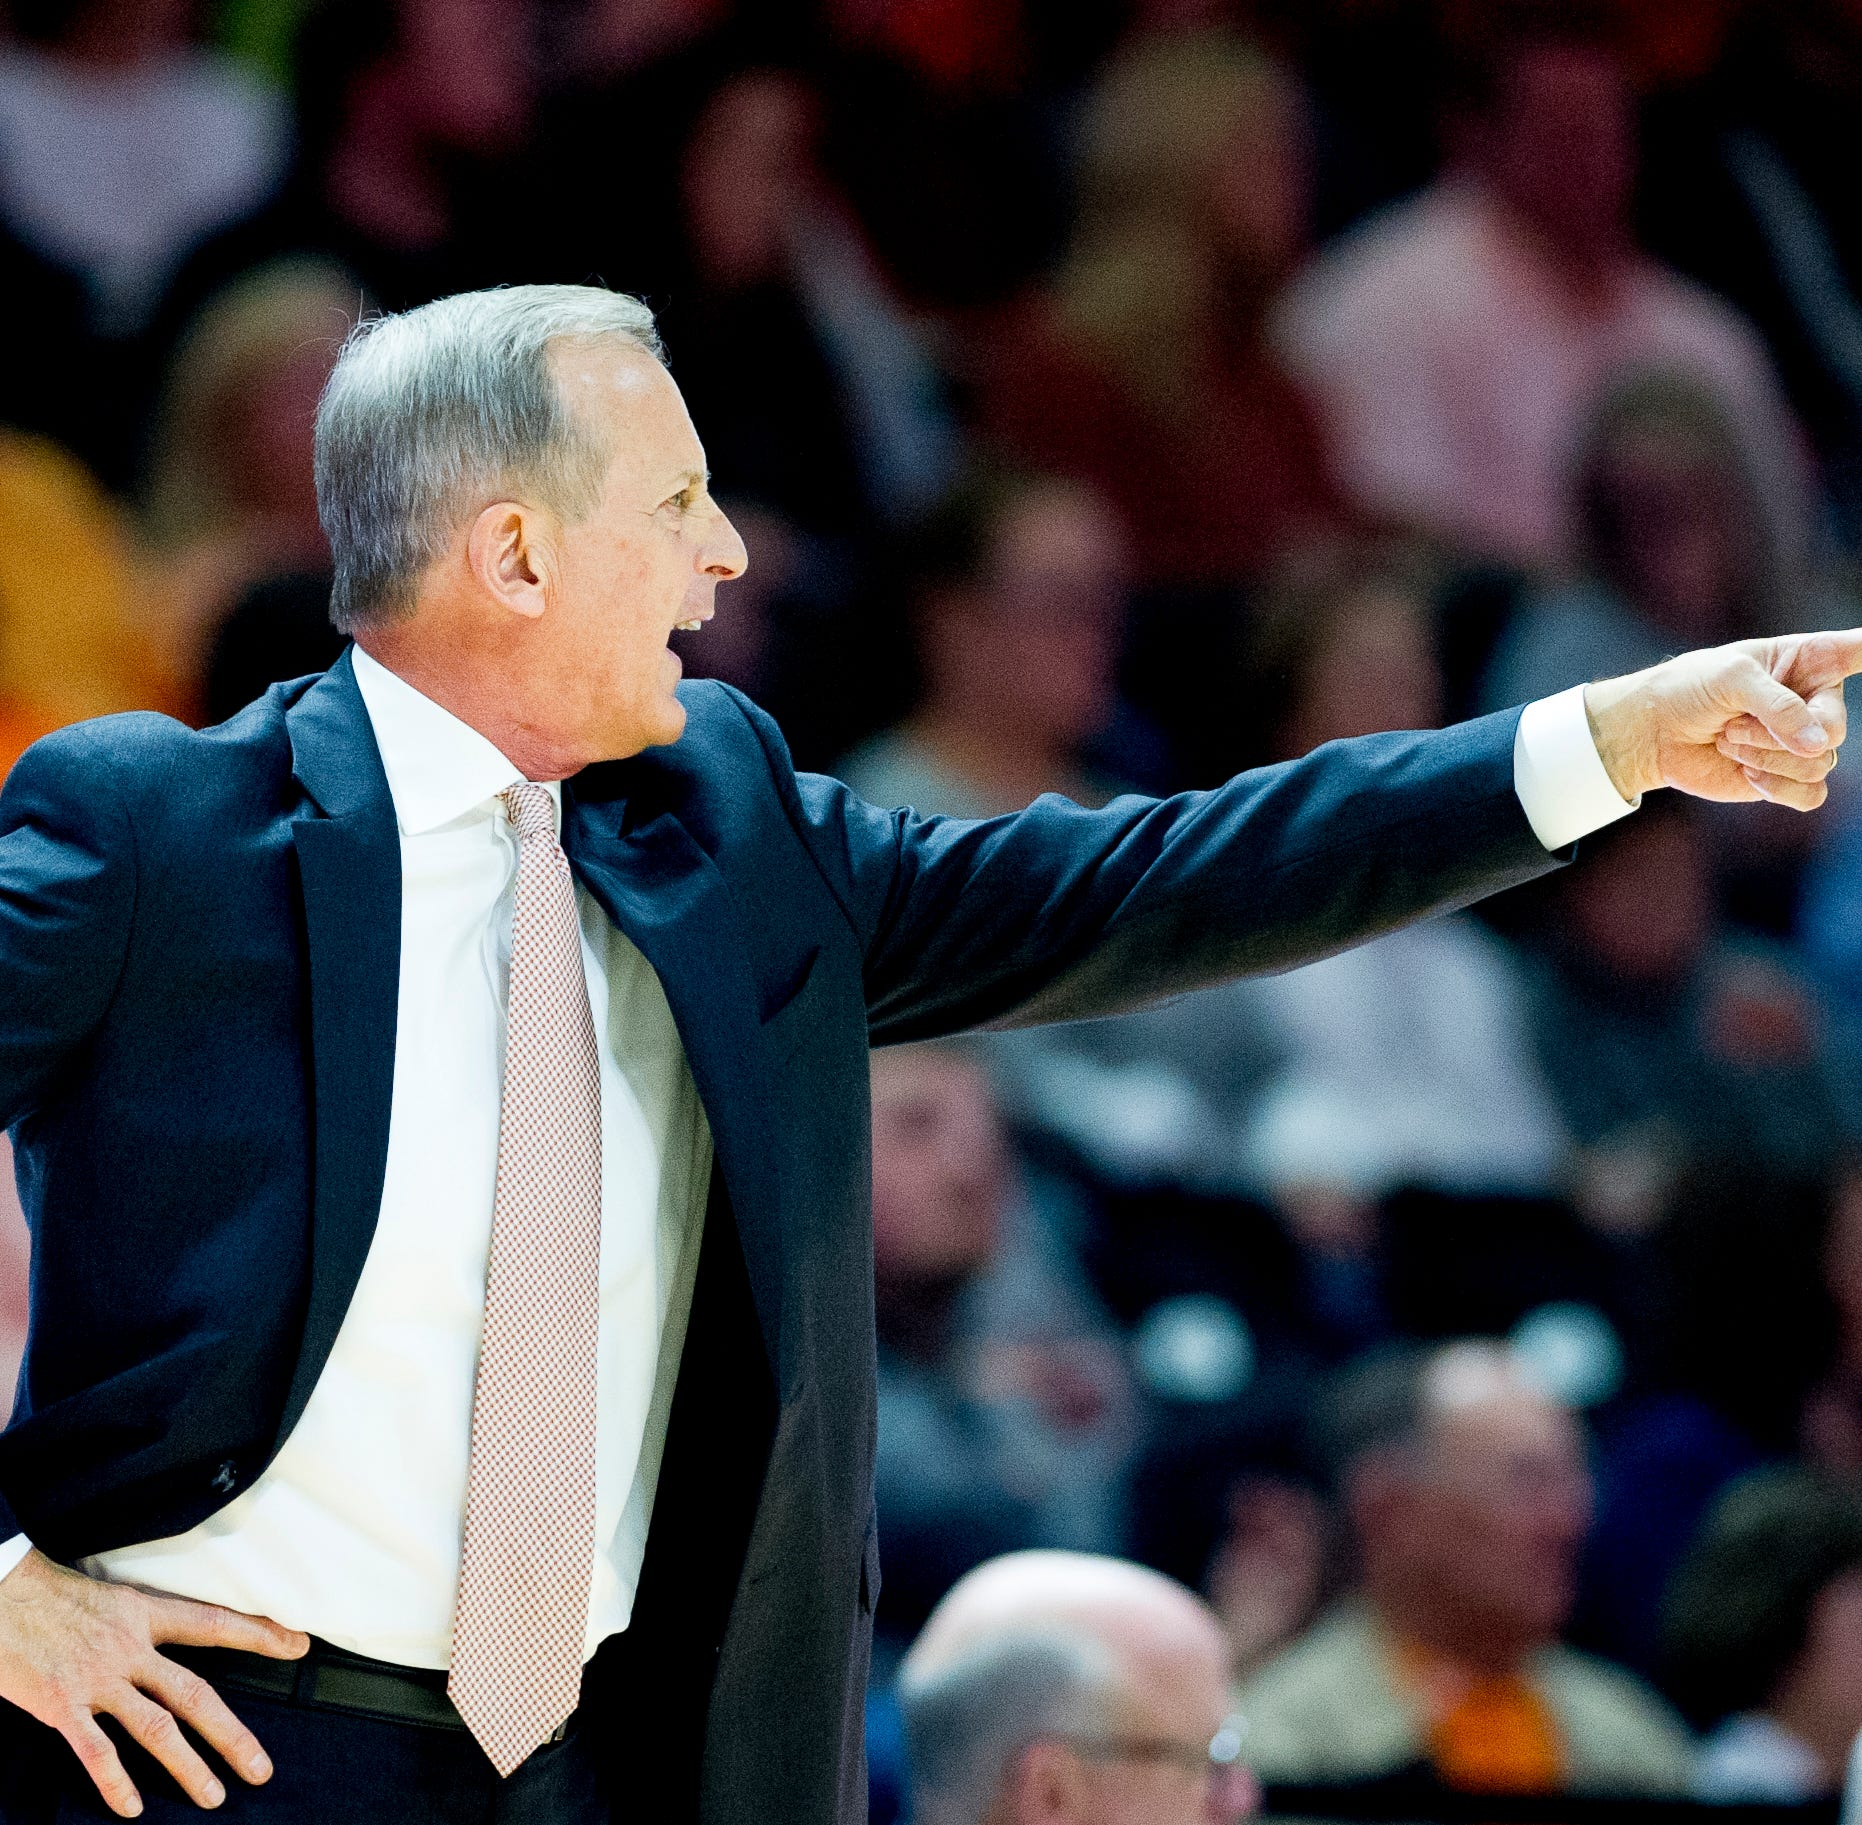 As Rick Barnes' salary rises, Tennessee basketball fans should have Final Four expectations